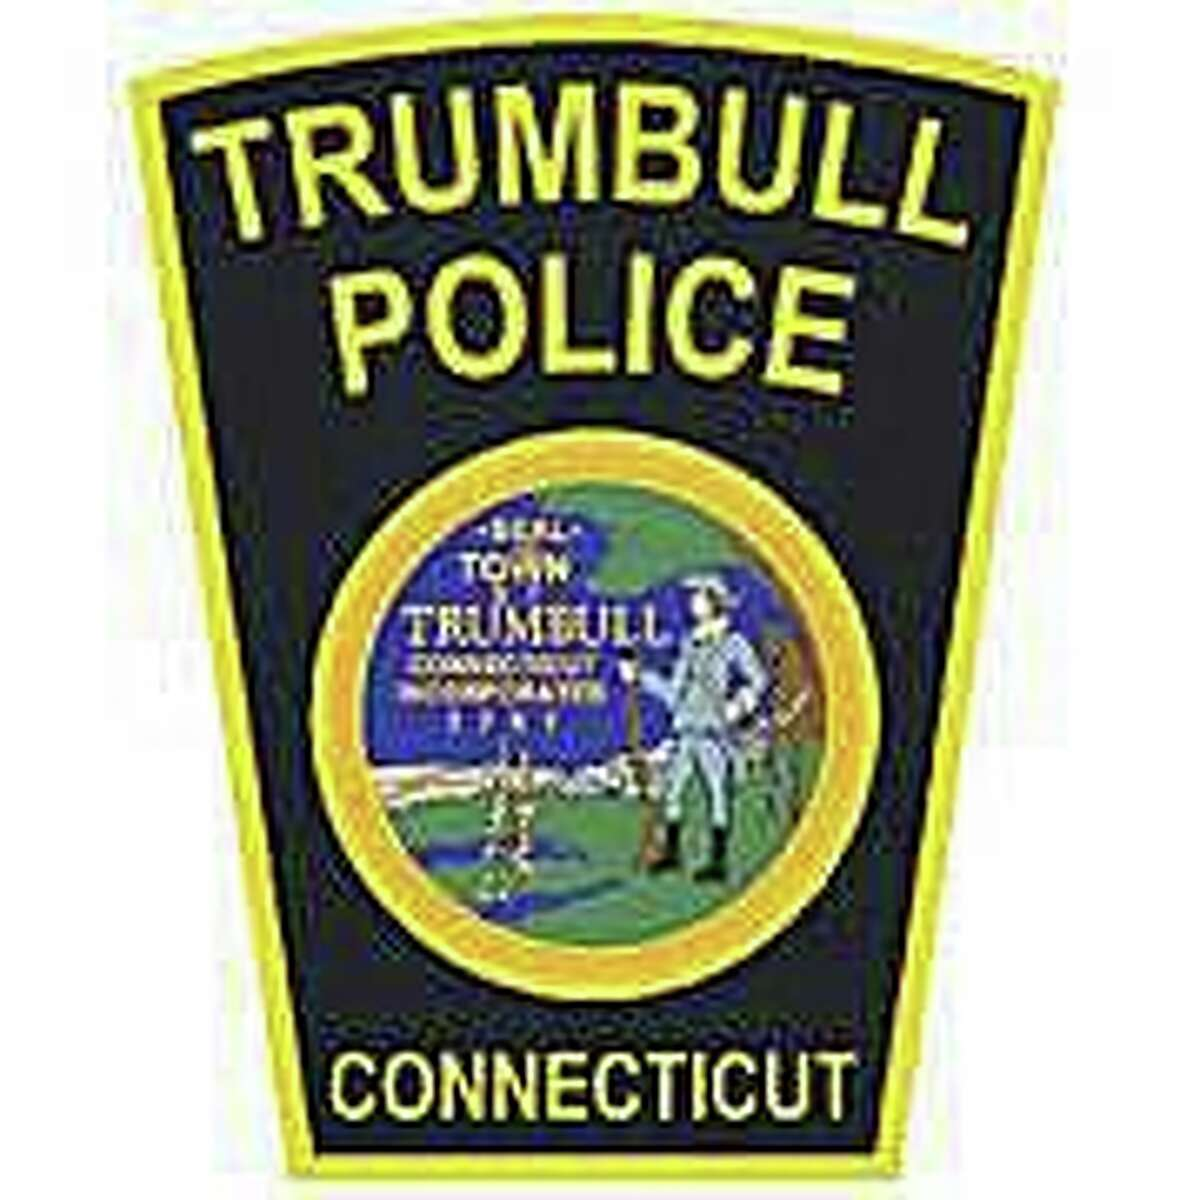 The teen was arrested on Thursday, Sept. 17, 2020 and charged with four counts of conspiracy to commit third-degree burglary, is scheduled to appear in New Haven Juvenile Court. He was released to the custody of his mother.